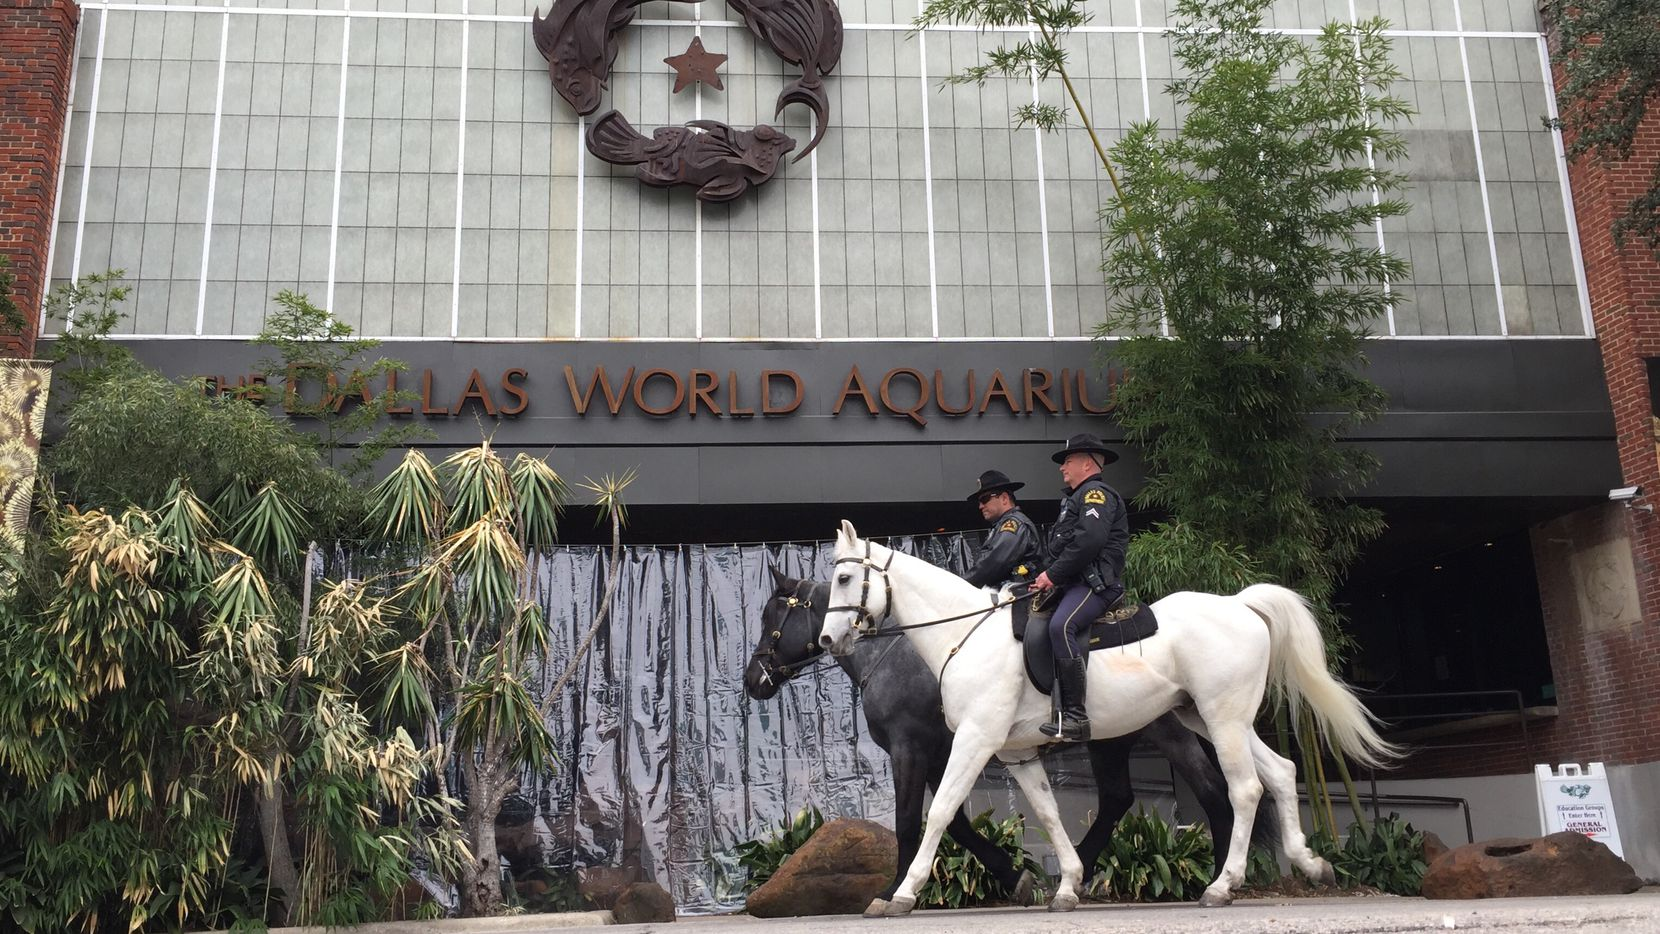 Two Dallas policemen, from the Department's Mounted Unit, pass the Dallas World Aquarium on 1801 N. Griffin St, Dallas, Texas on Friday, January 19, 2018.